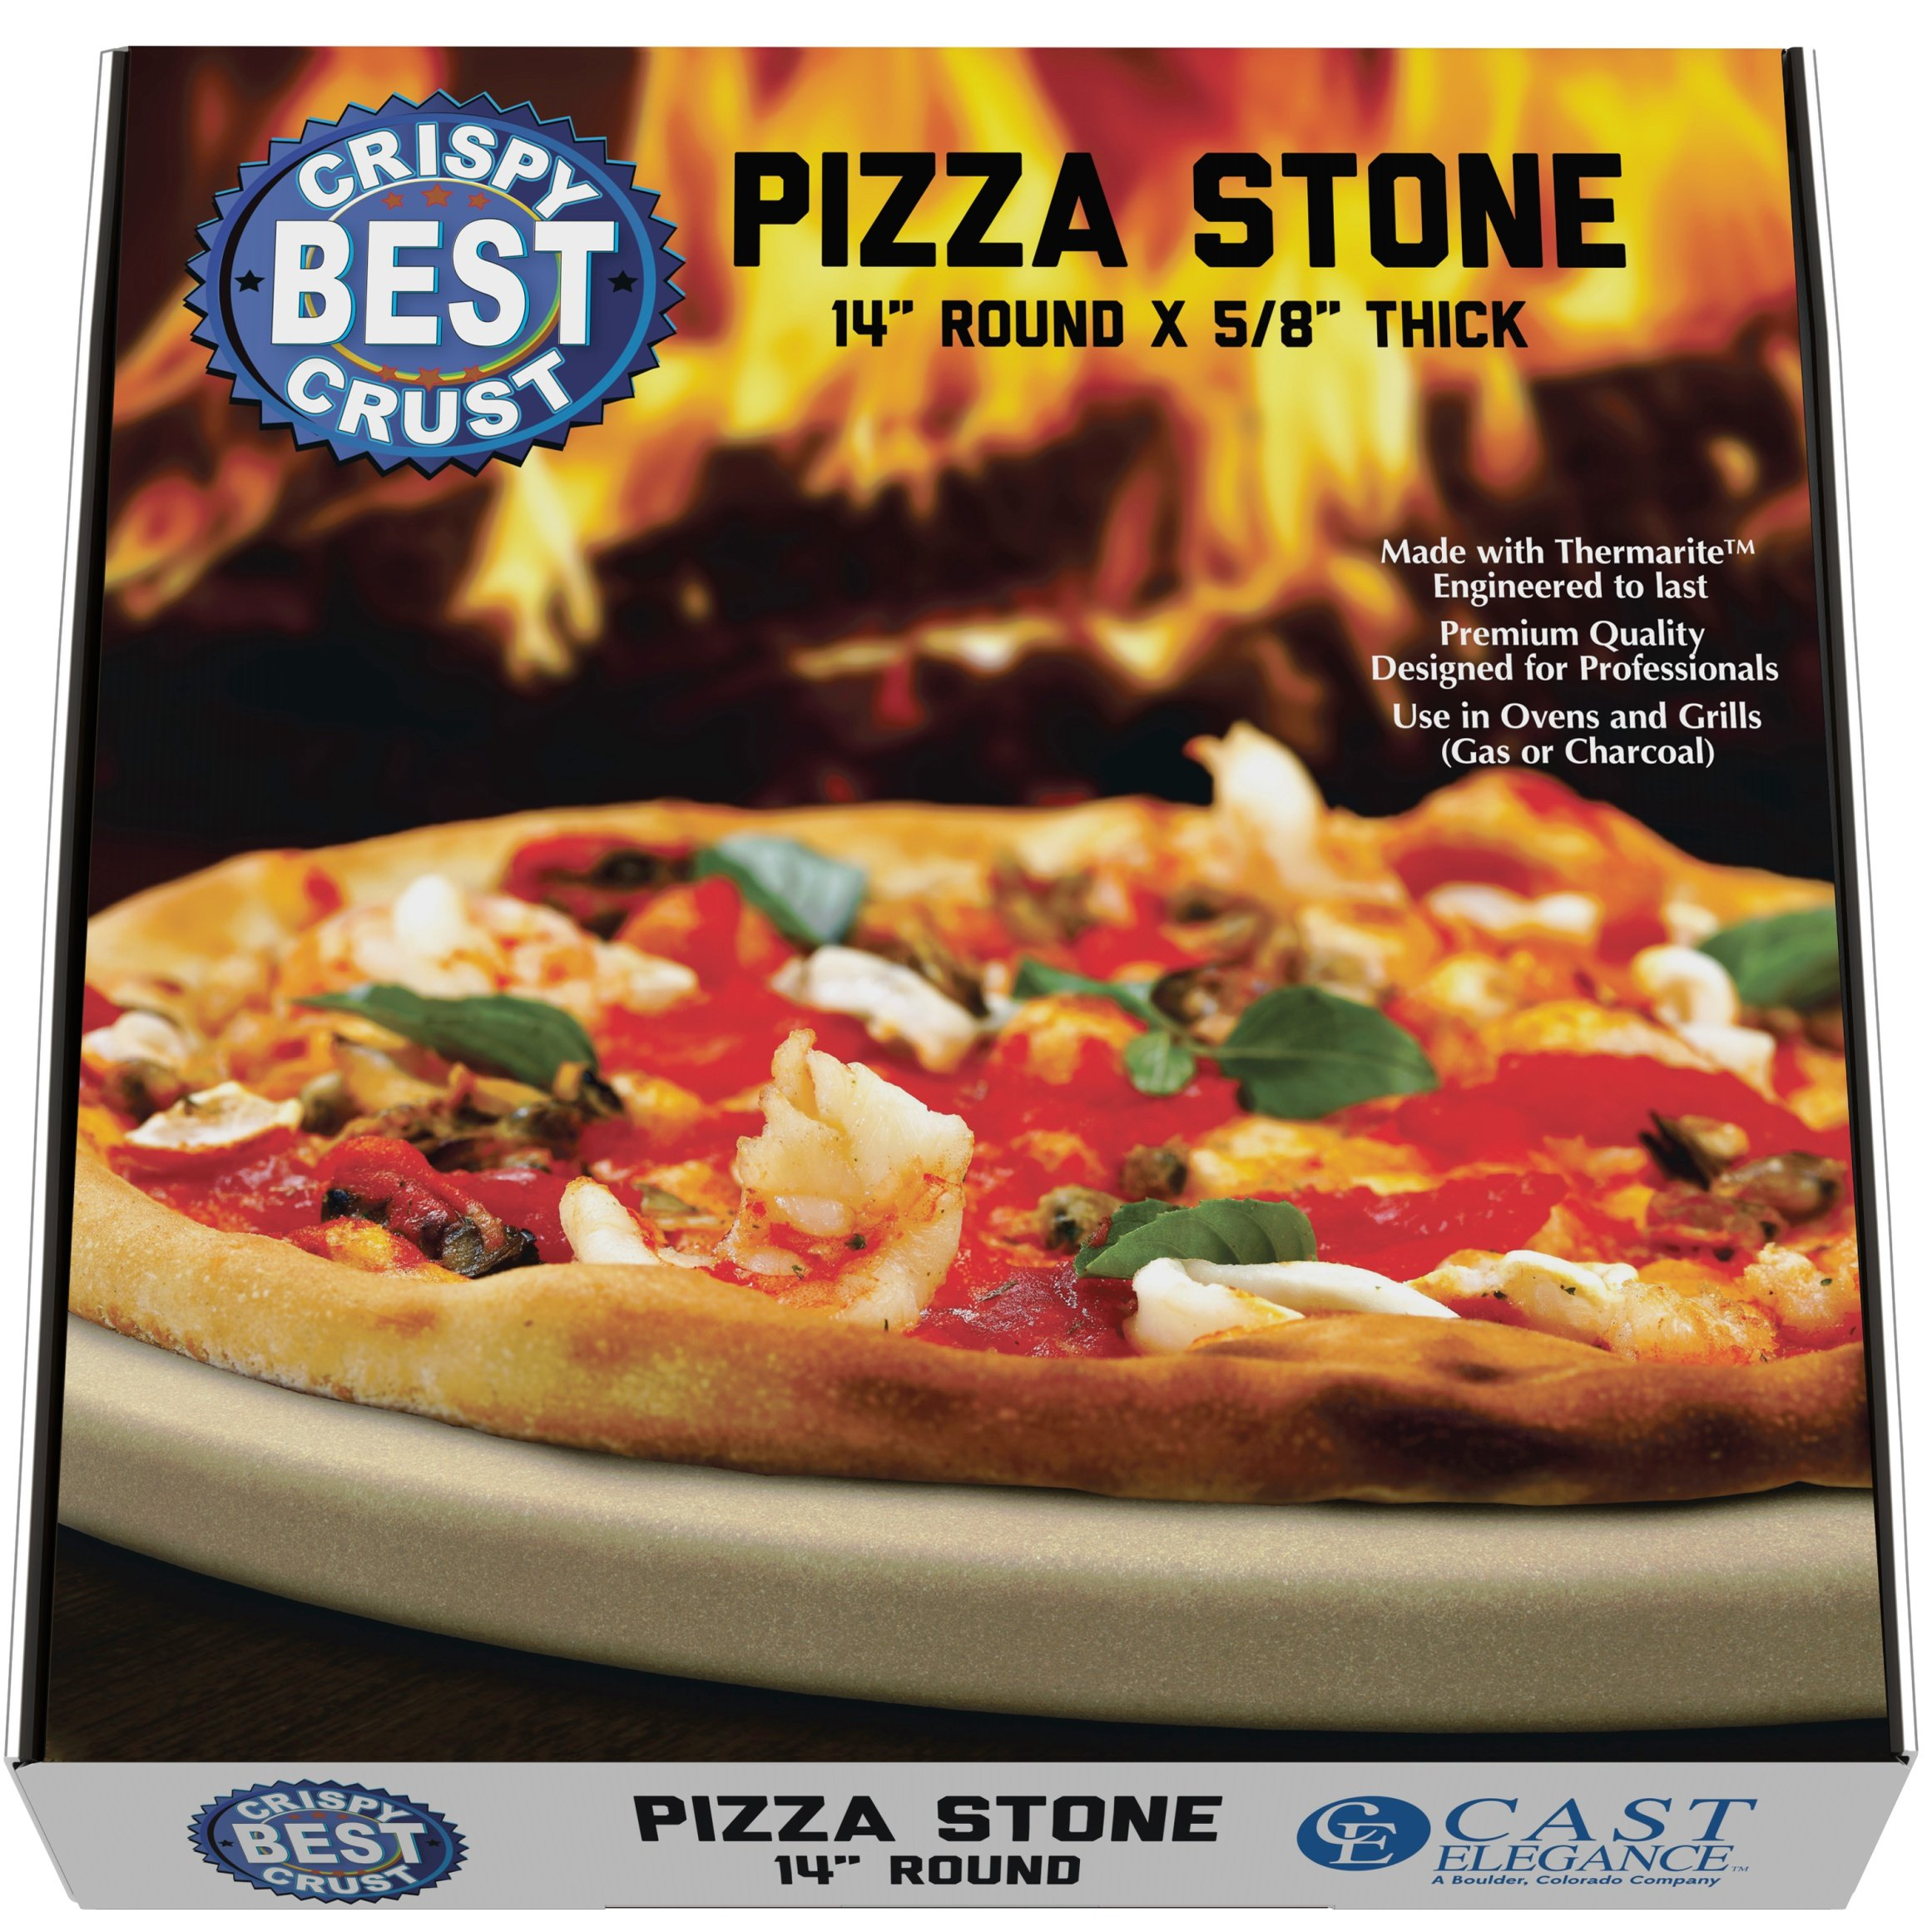 Pizza Stone for Best Crispy Crust Pizza, Only Stoneware with Thermarite (Engineered Tuff Cordierite). Durable, Certified Safe, for Ovens & Grills. 14 Round 5/8 Thick, Bonus Recipe Ebook & Free Scraper by CastElegance